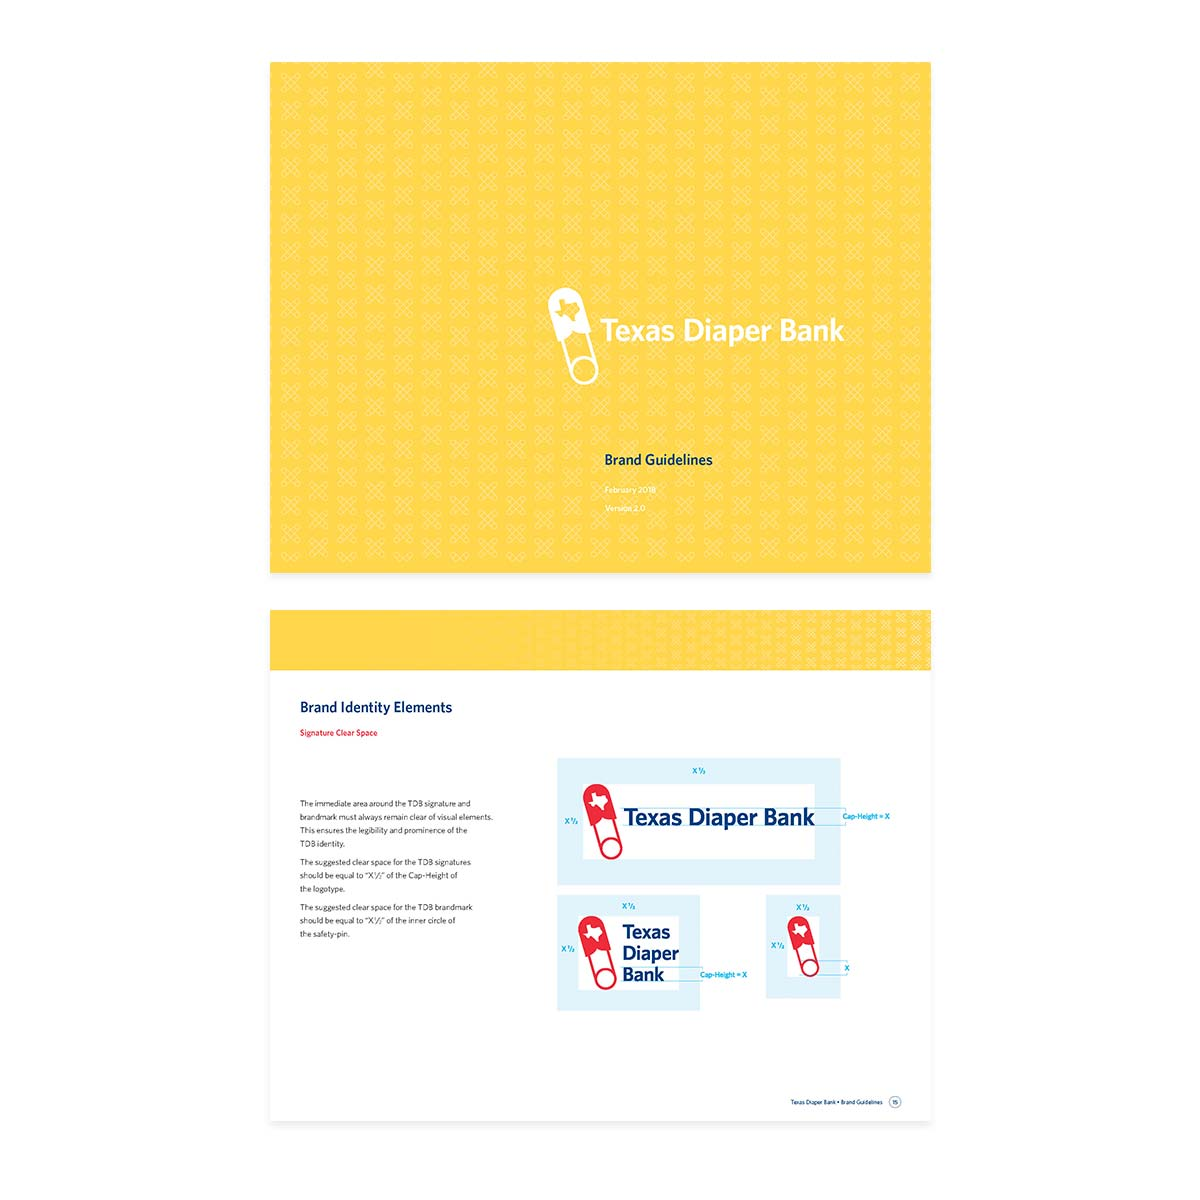 Two pages from the brand guidelines